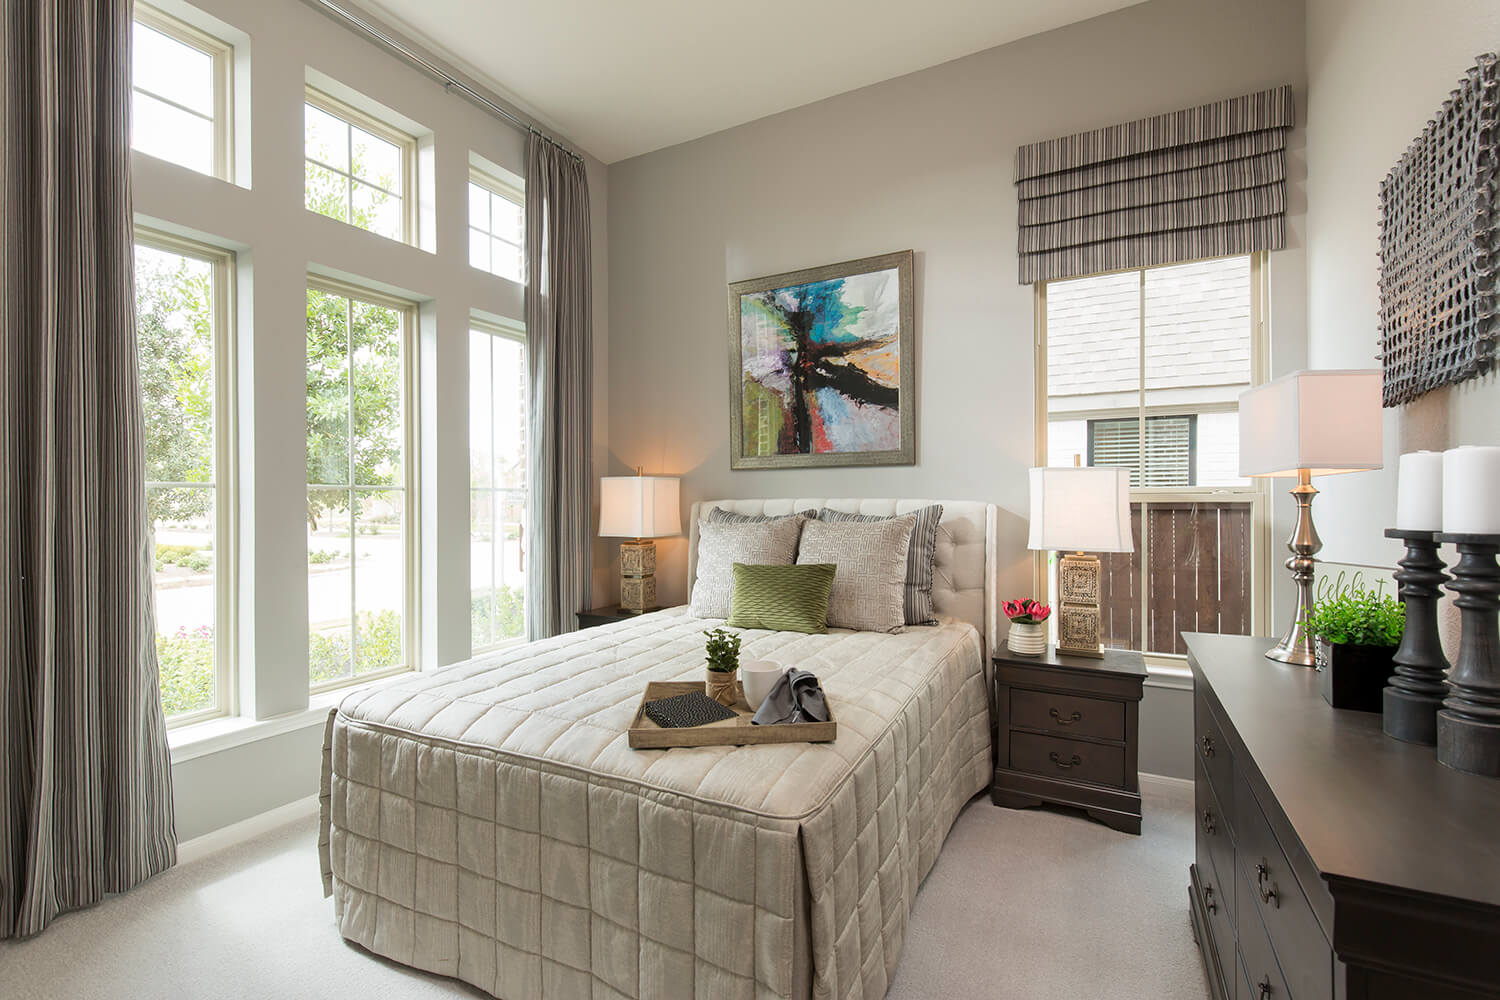 Secondary Bedroom - The Ingleside (5402 Plan)